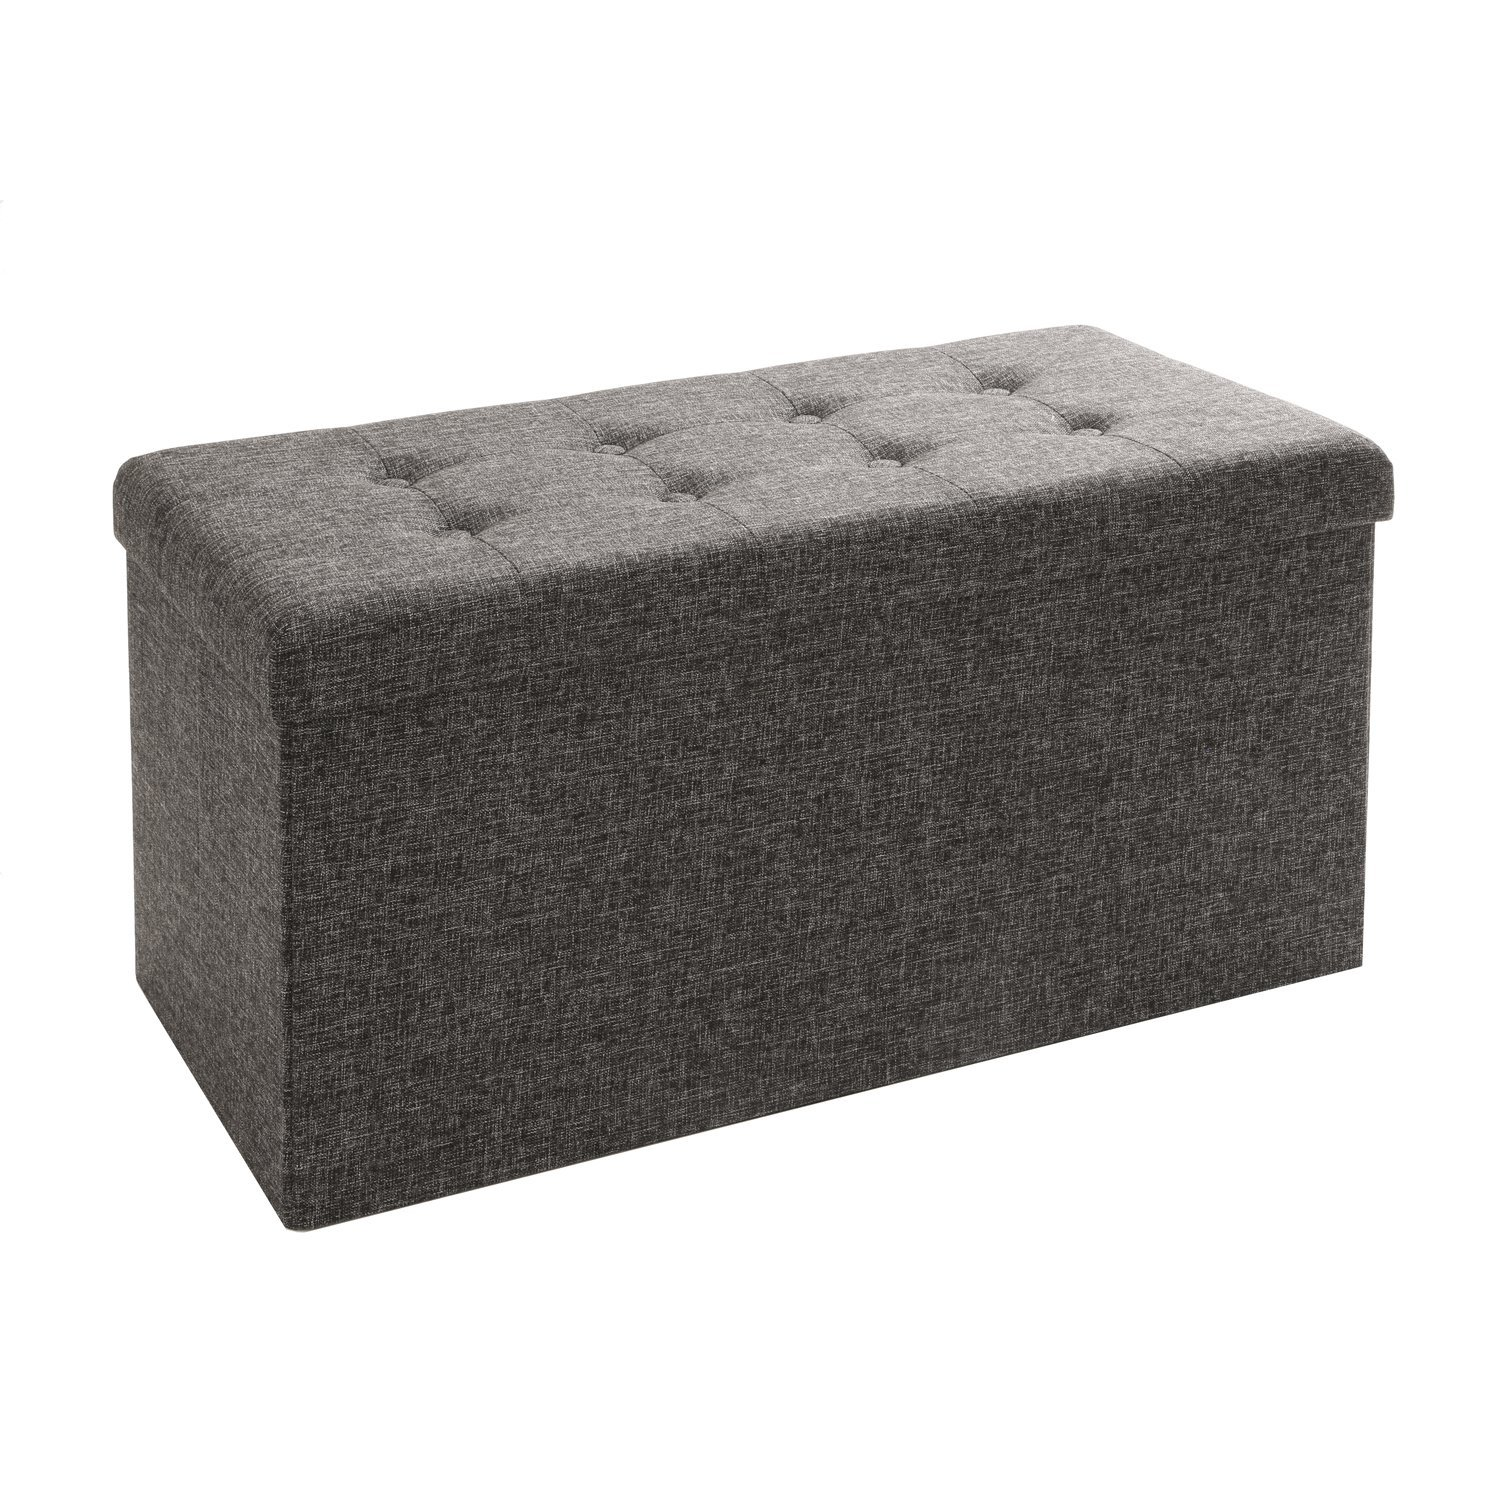 Small Storage Ottomans | Storage Ottoman Table | Storage Cube Ottoman